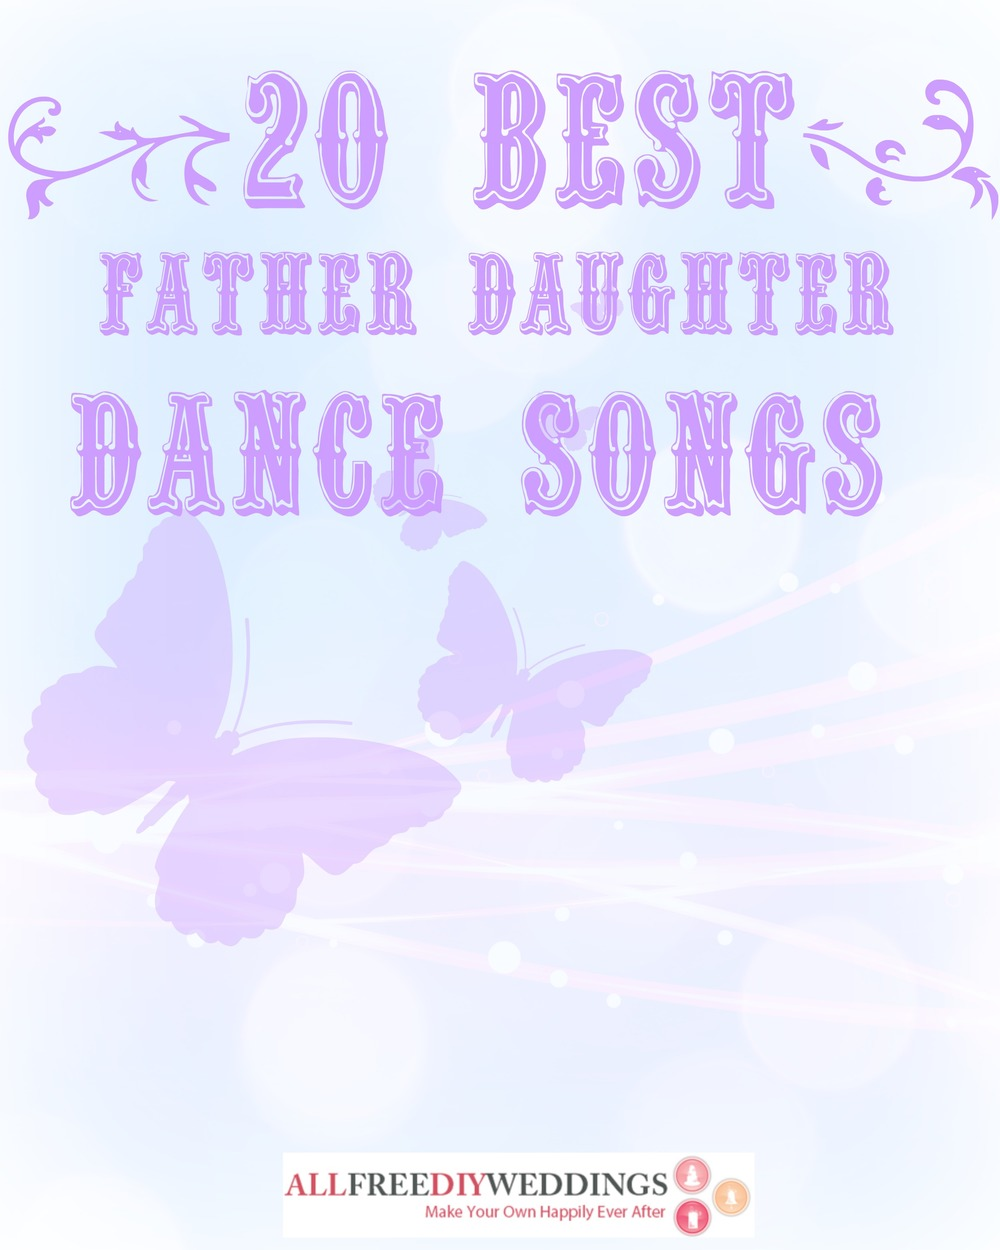 20 best father daughter dance songs allfreediyweddings com